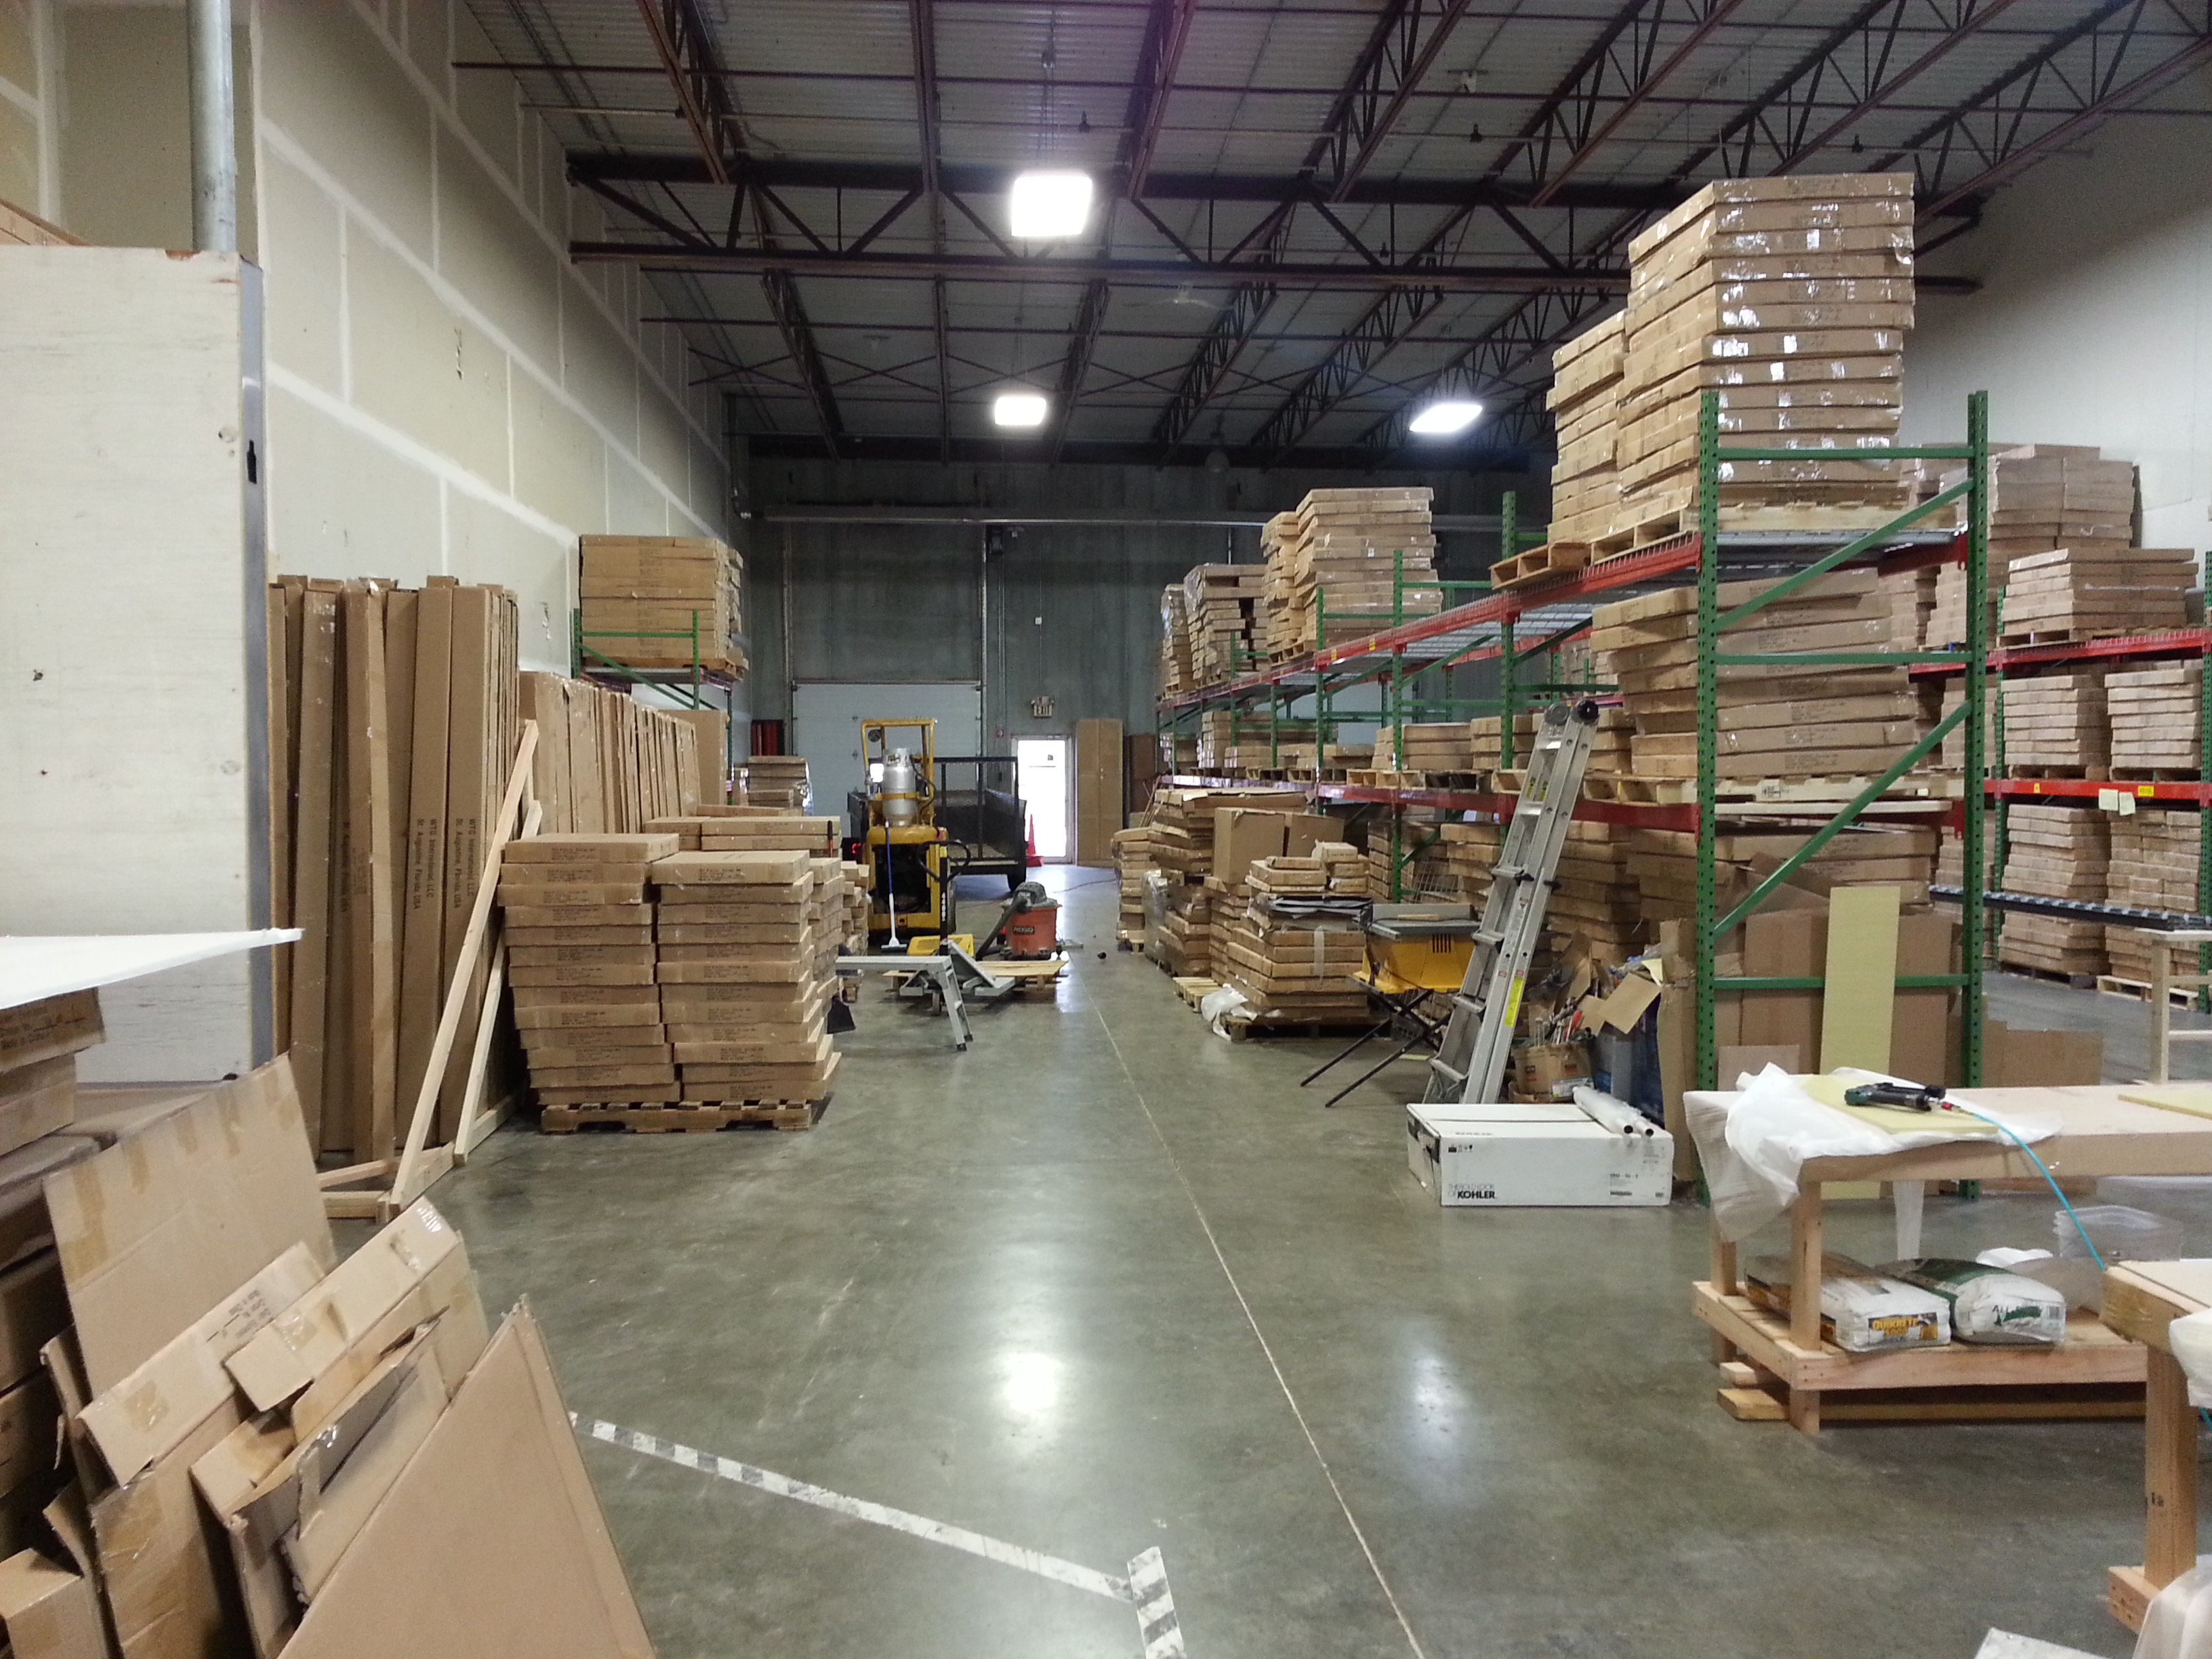 Remodeling and renovations burnsville titus contracting - Warehouse remodeled into house ...